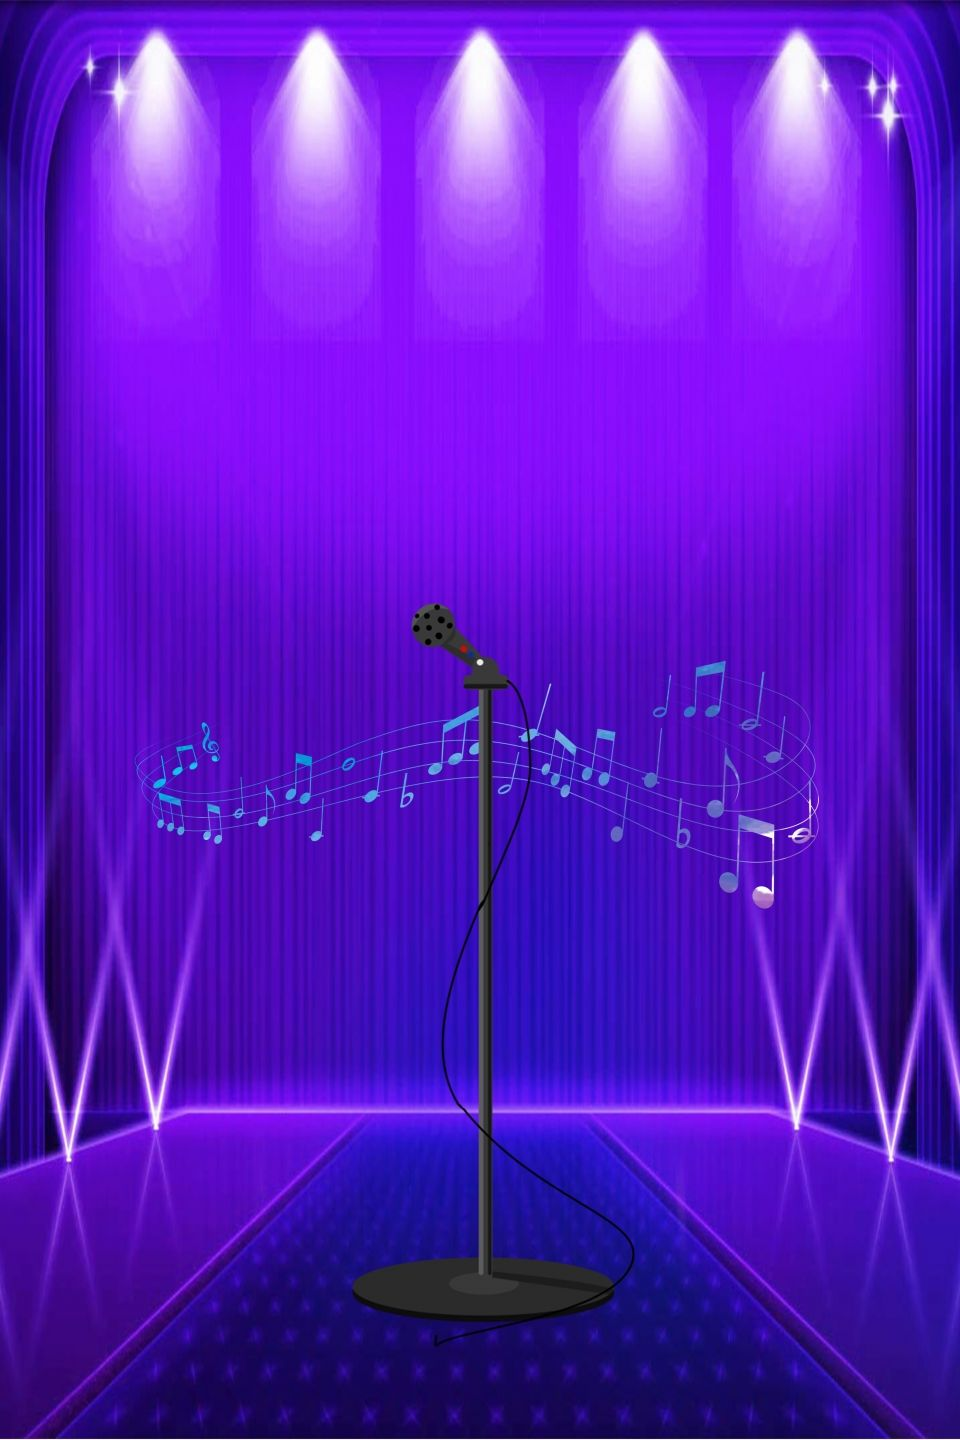 Atmospheric Concert Stage Poster Background Material Concert Stage Banner Background Images Light Background Images